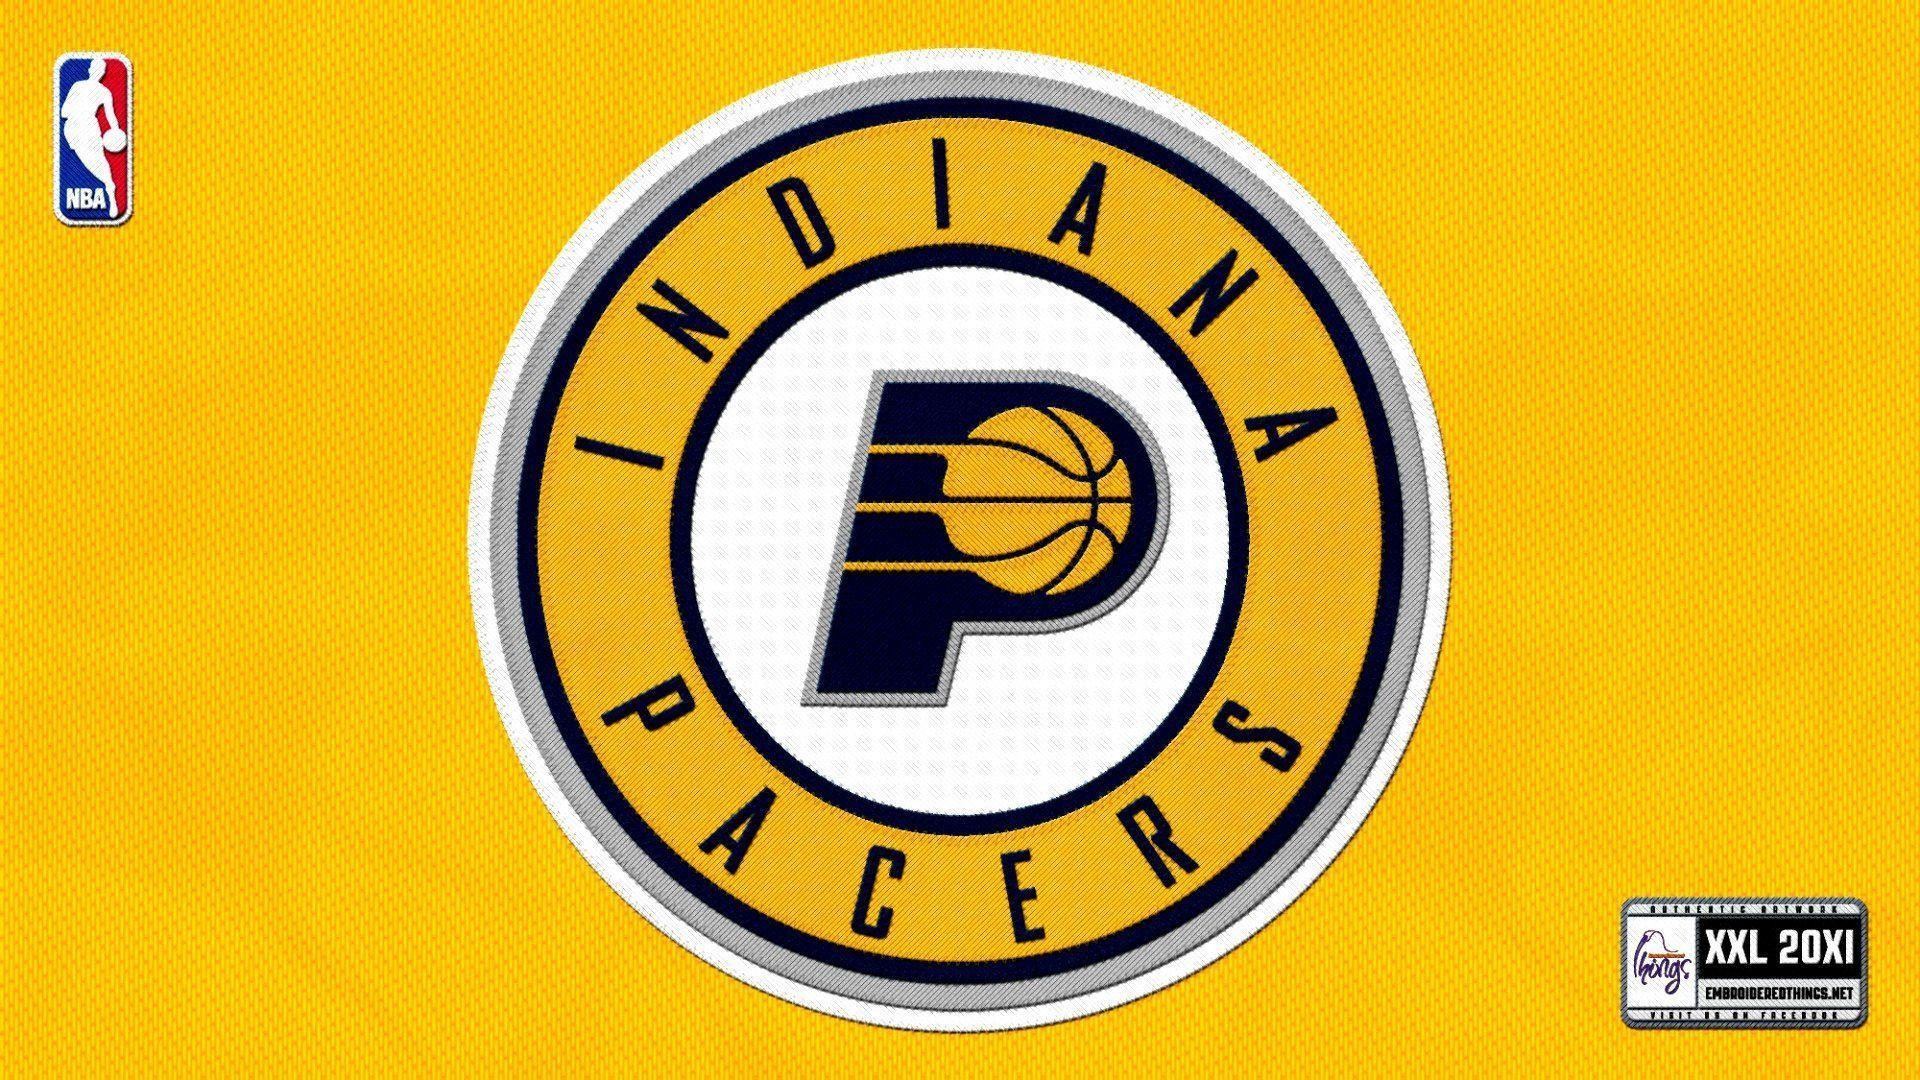 1920x1080 NBA Indiana Pacers Team Logo Yellow wallpaper HD 2016 in .